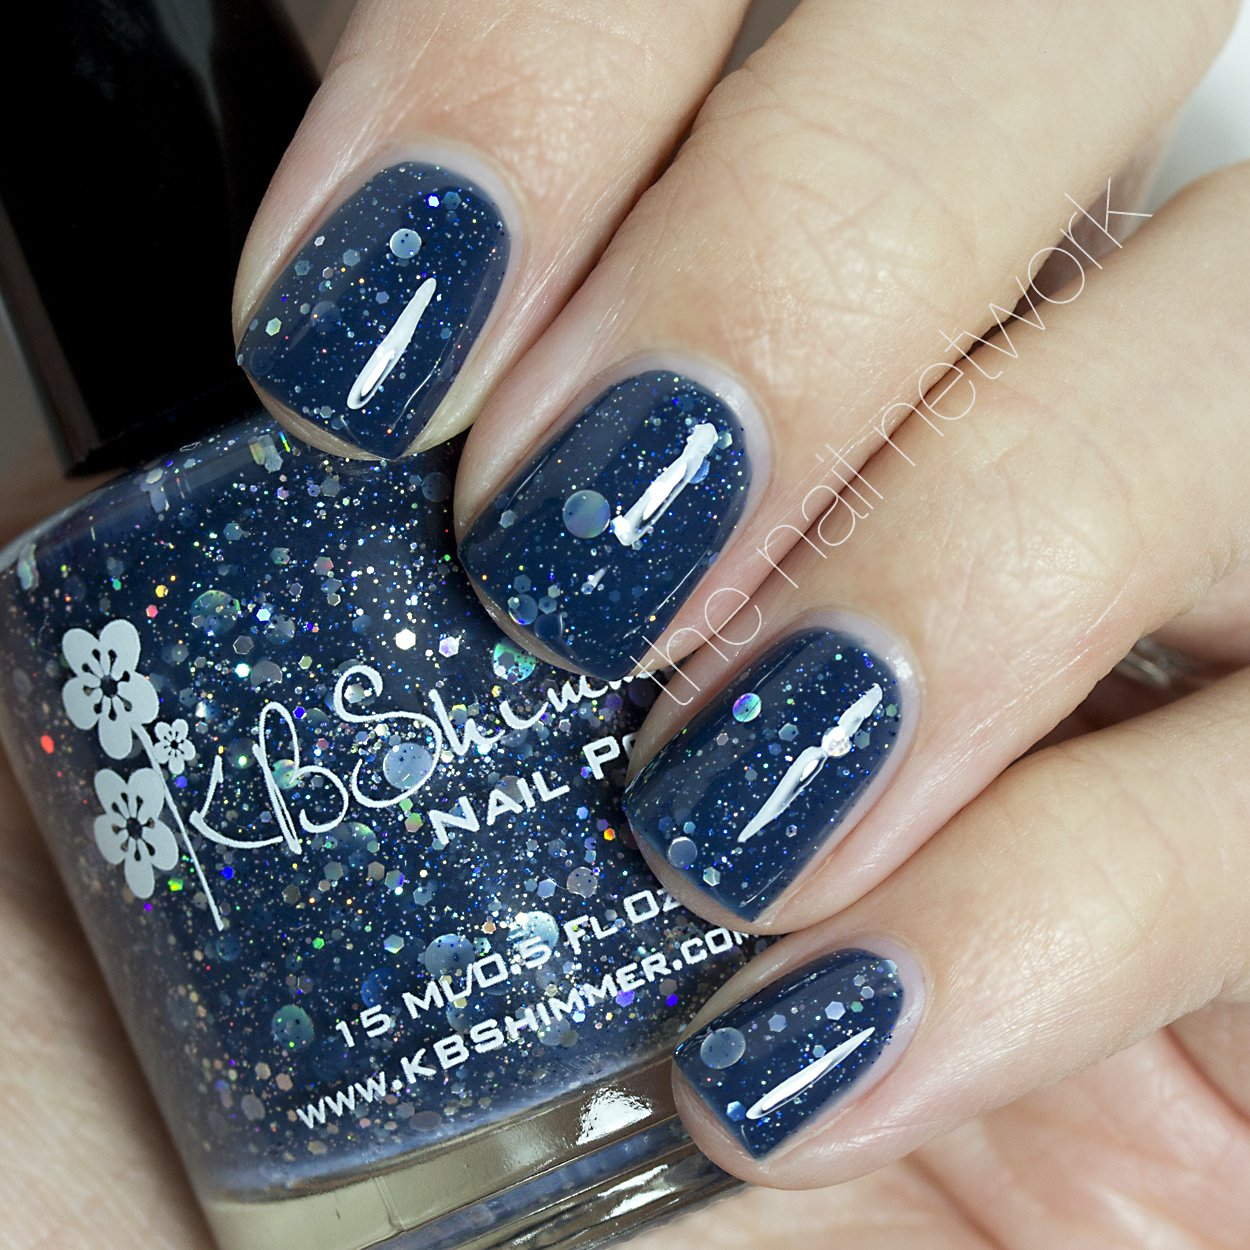 Amazon.com : Will Yule Marry Me? Navy Glitter Nail Polish- 0.5 oz ...